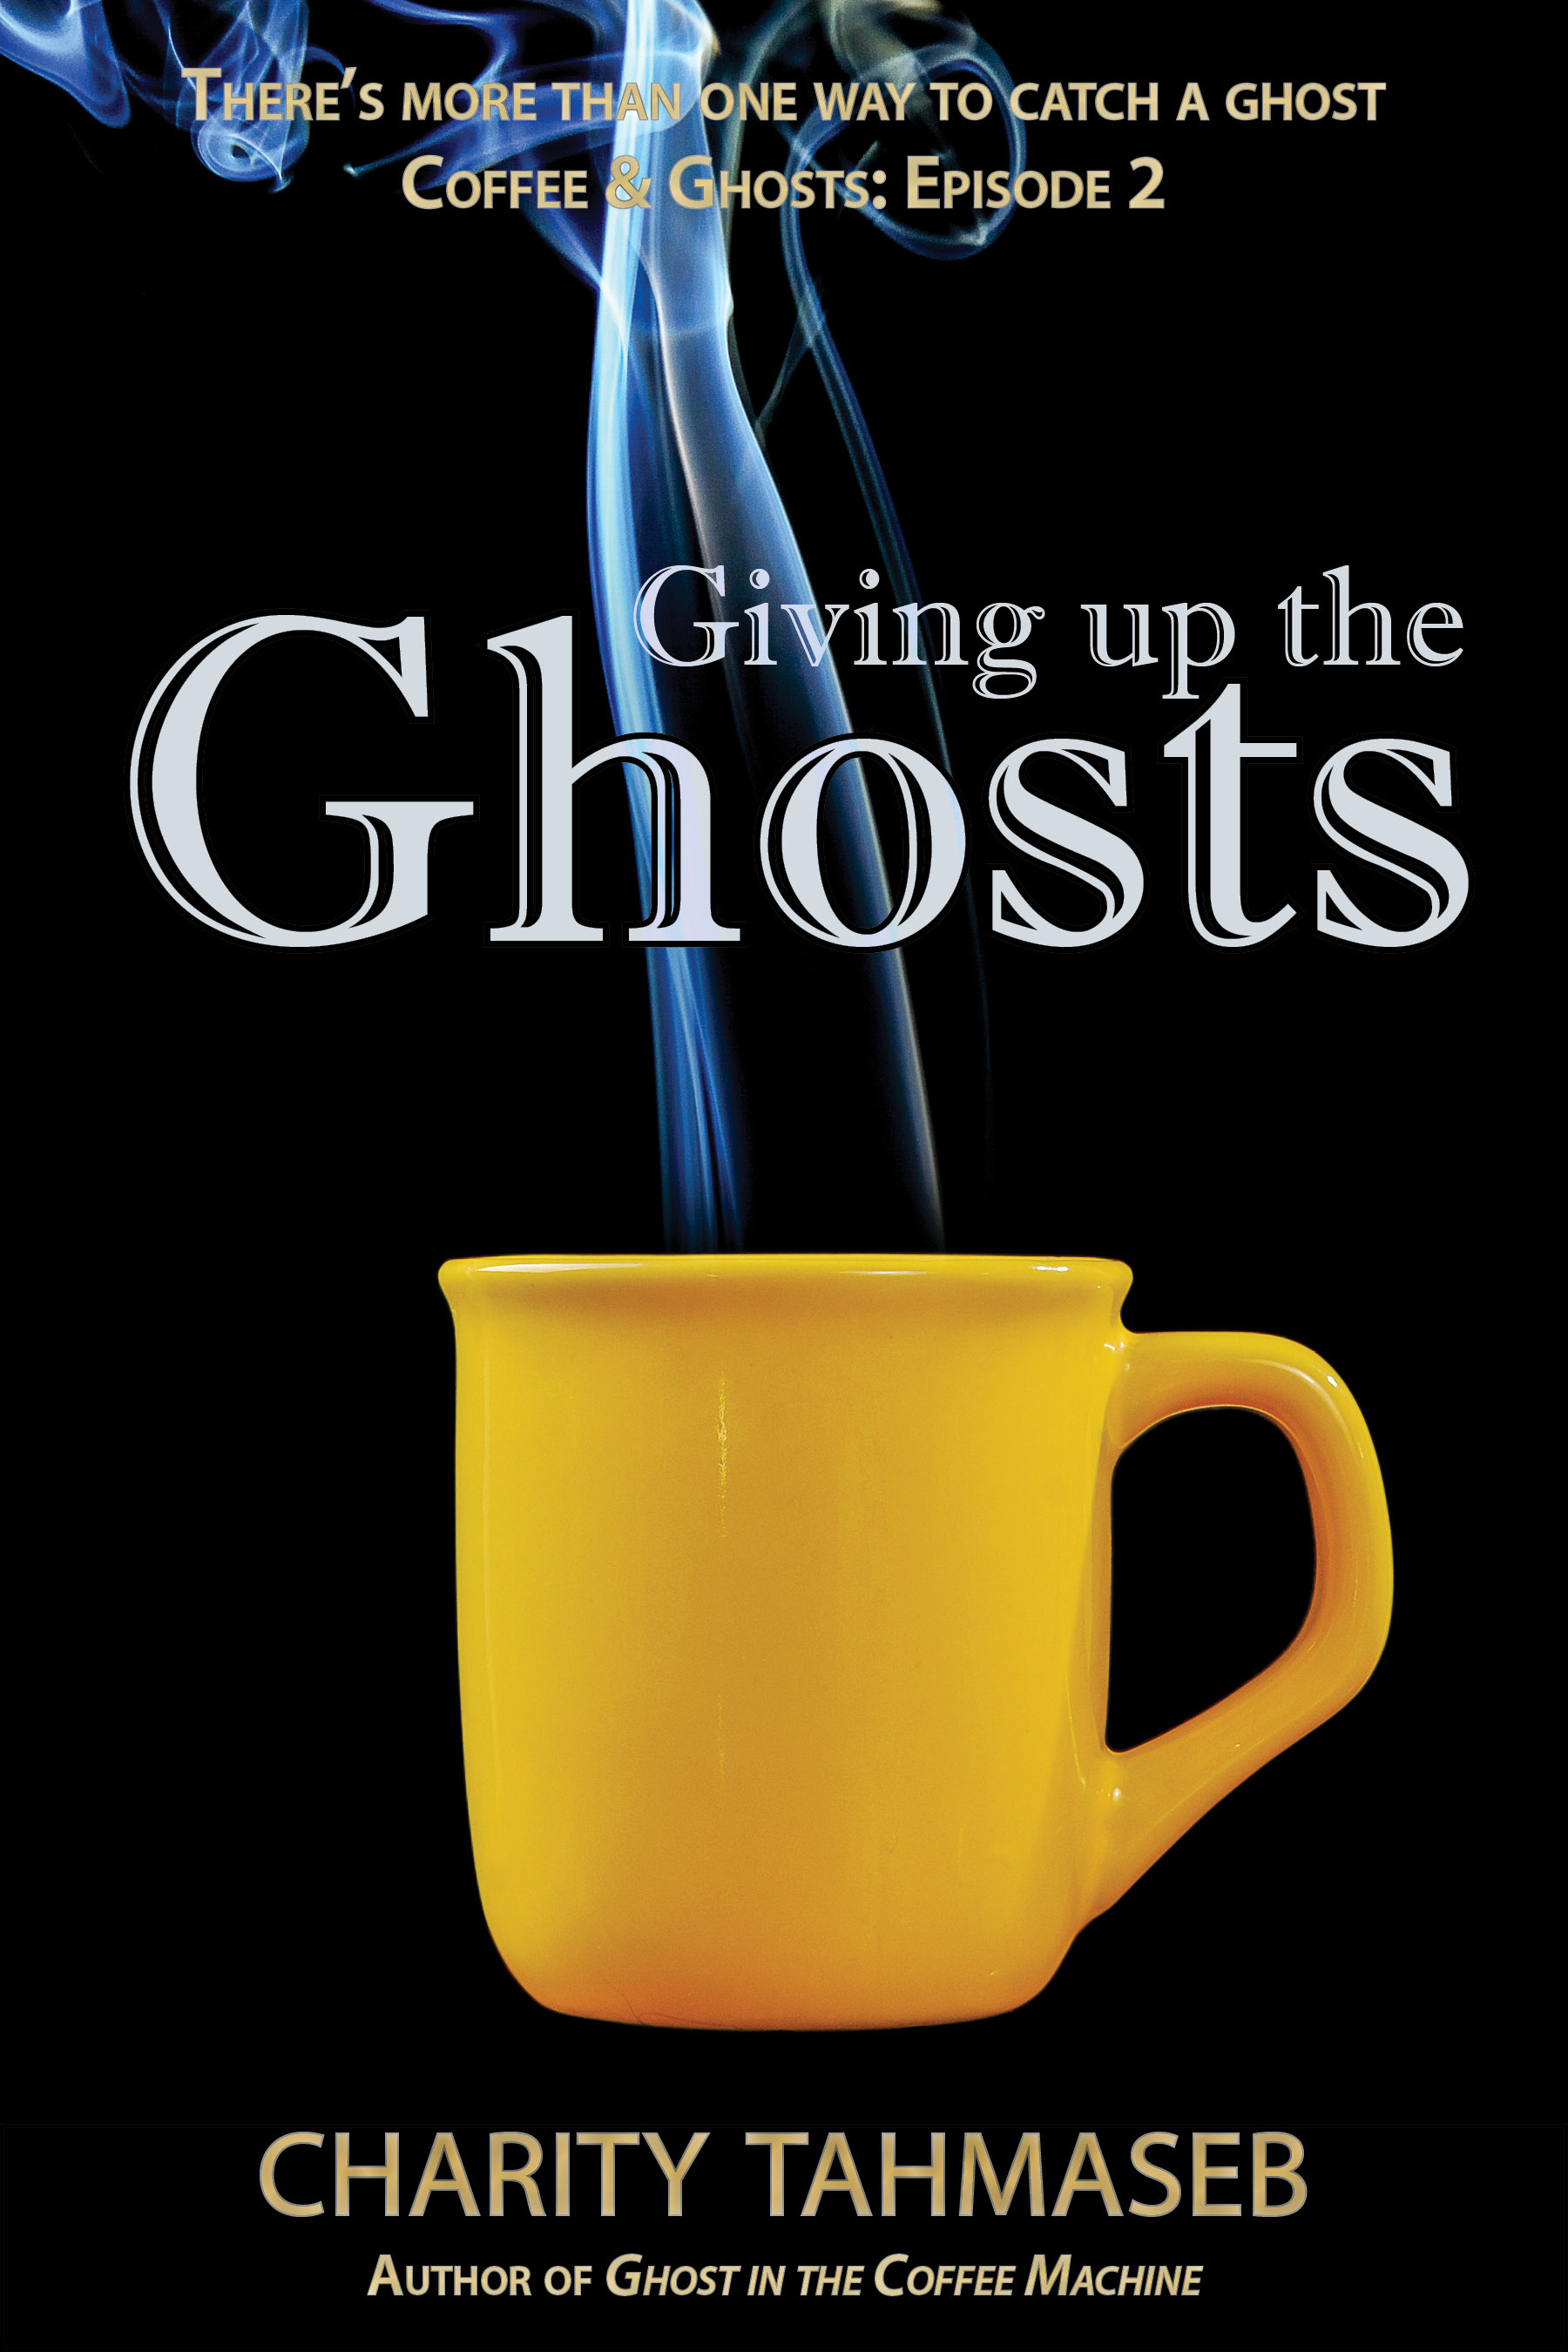 Giving up the Ghosts: Coffee and Ghosts: Episode 2